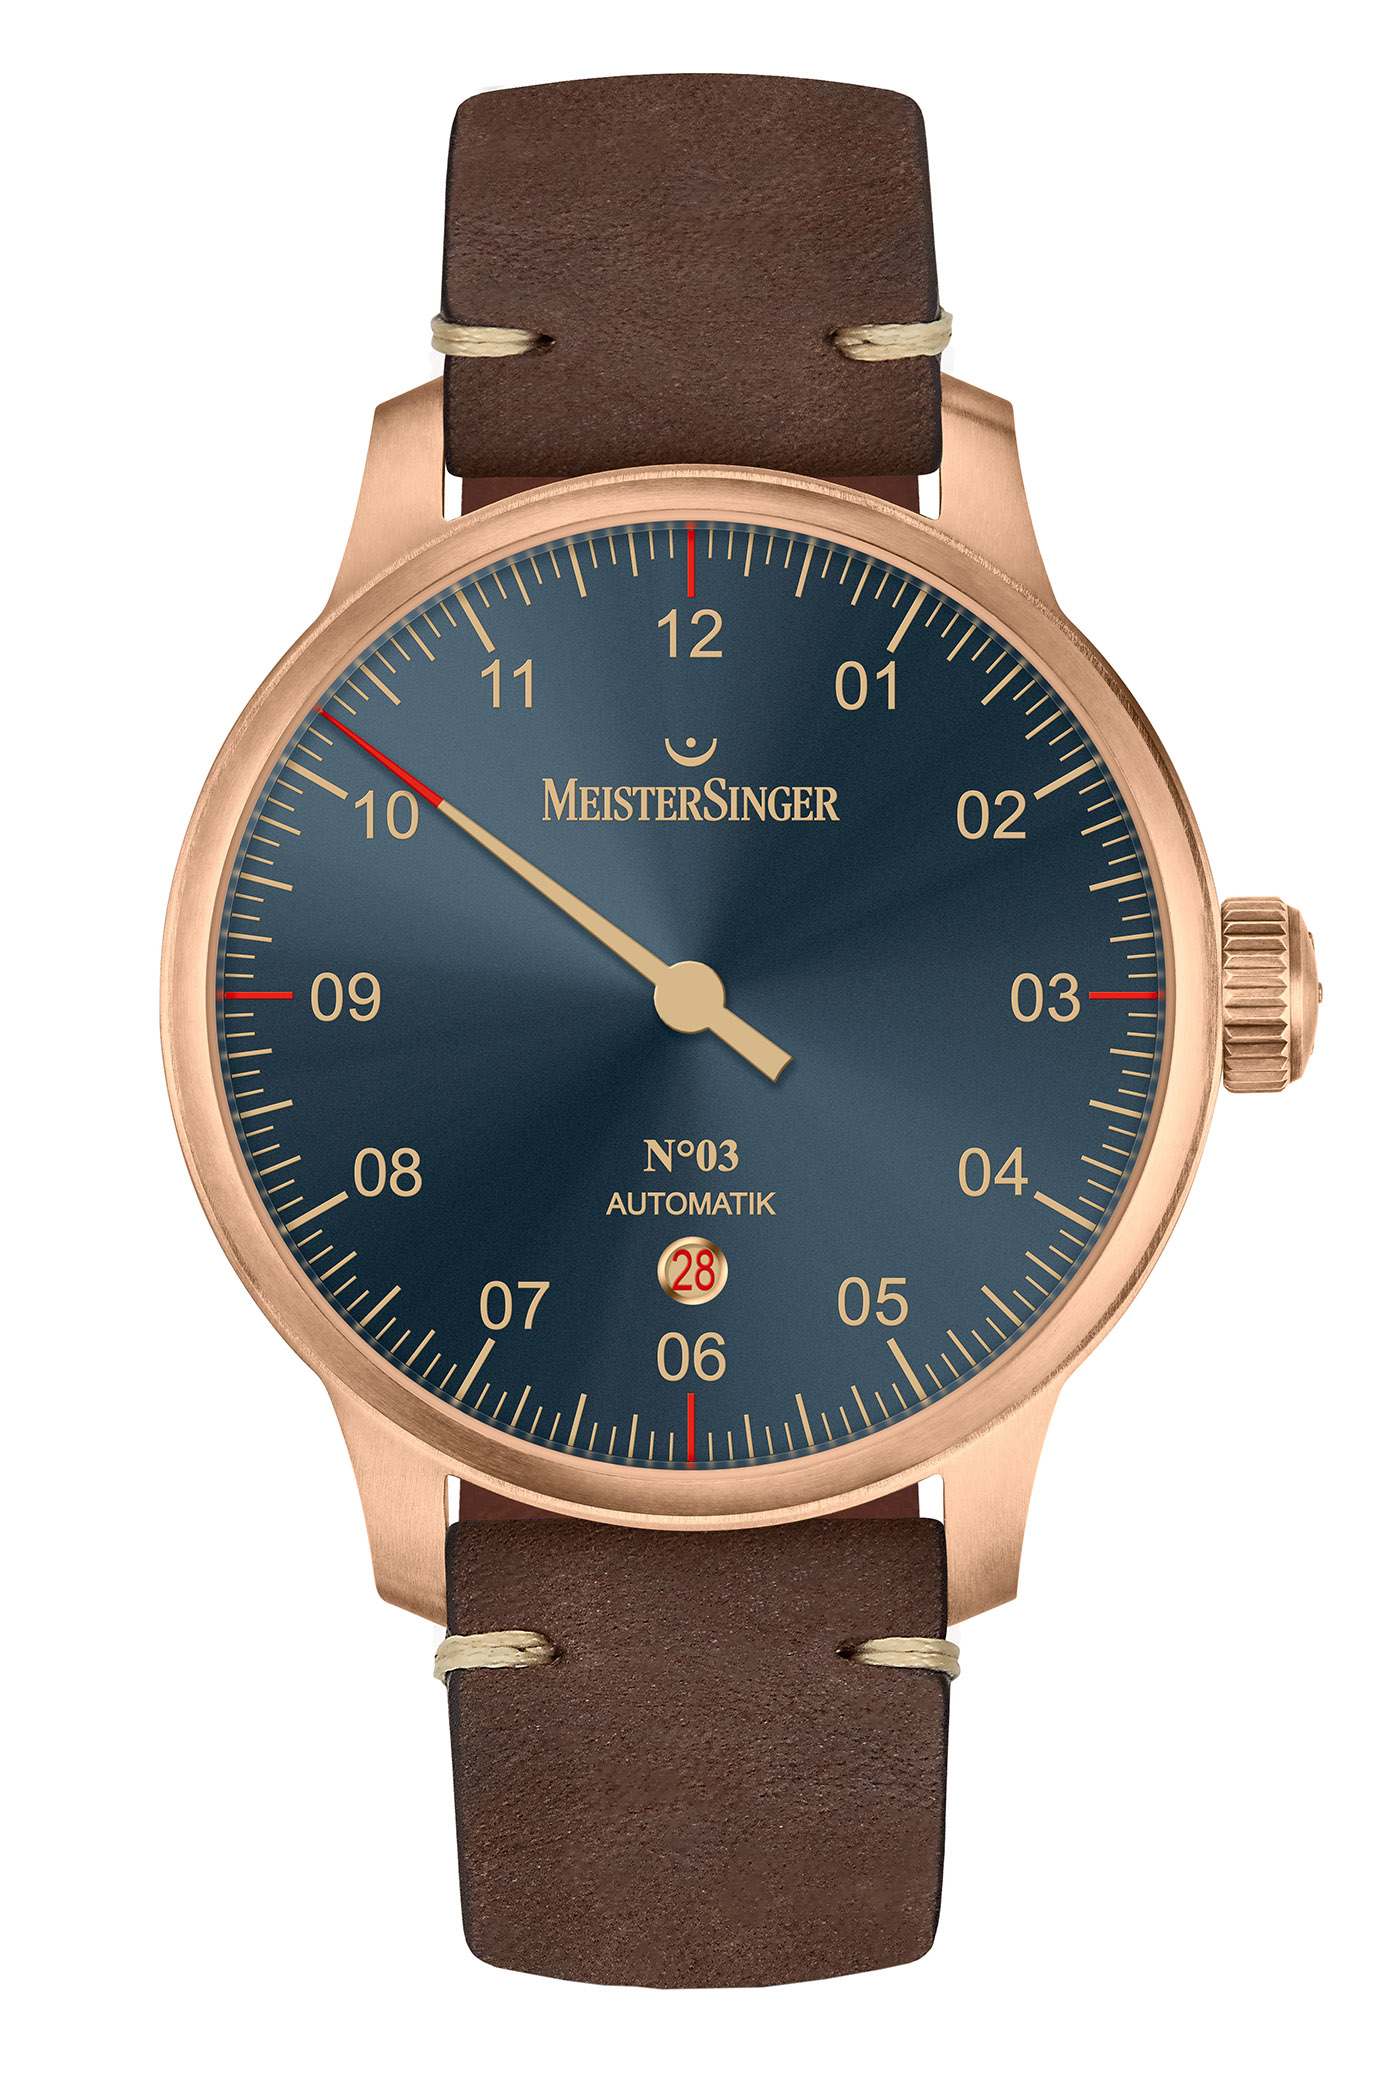 Baselworld 2019 - MeisterSinger Bronze Editions No. 03, Perigraph and Metris - 3